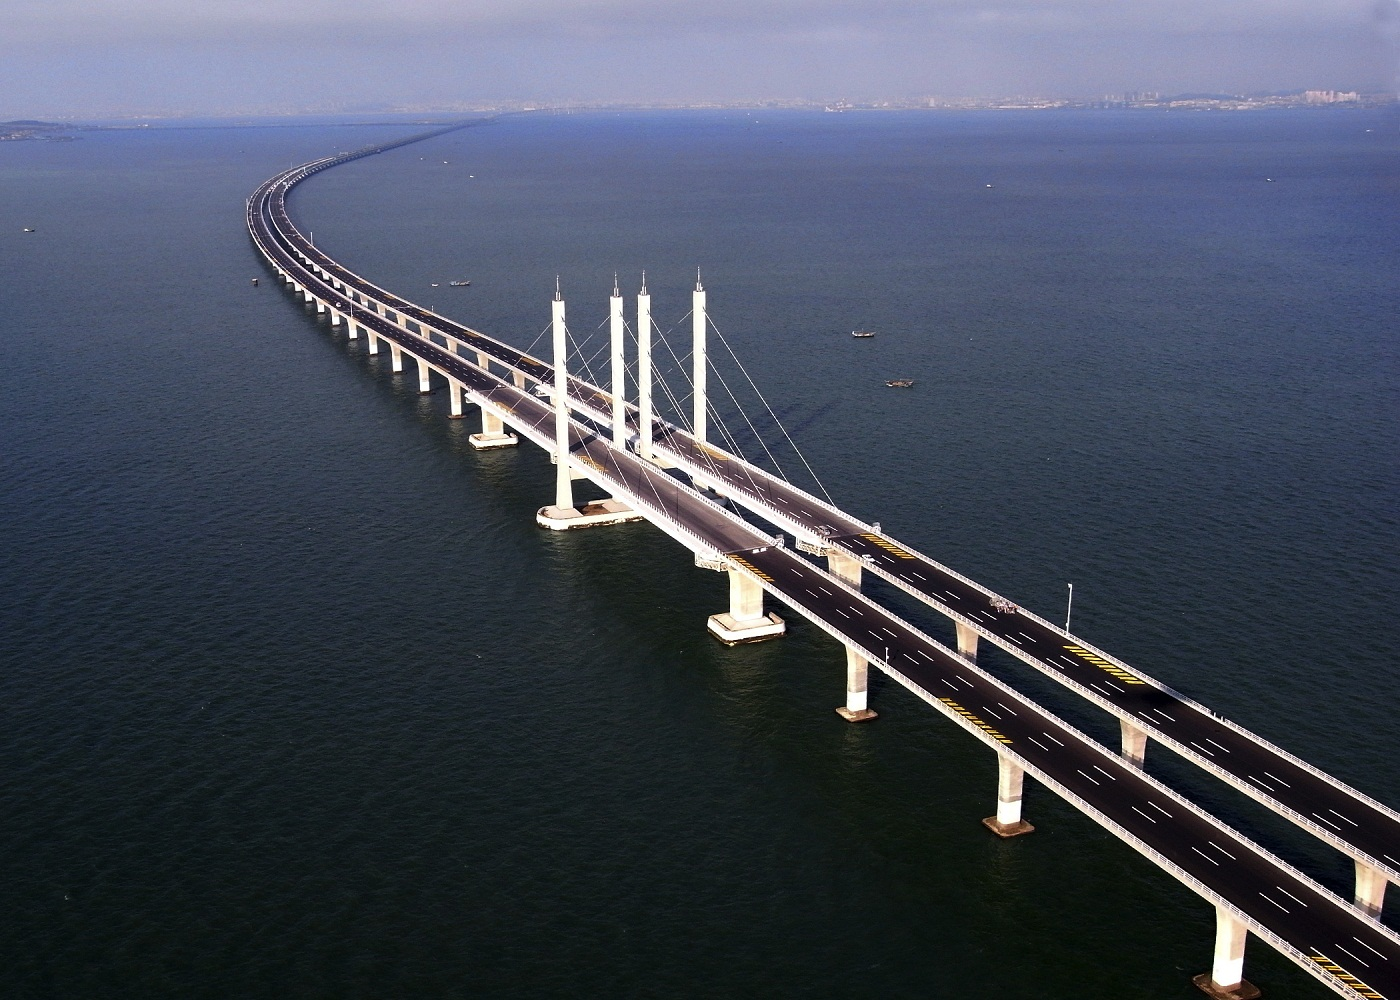 The purpose of the bridge as part of the plan to provide better connectivity between the two fast-growing industrial regions on either side of the Jiaozhou Bay.